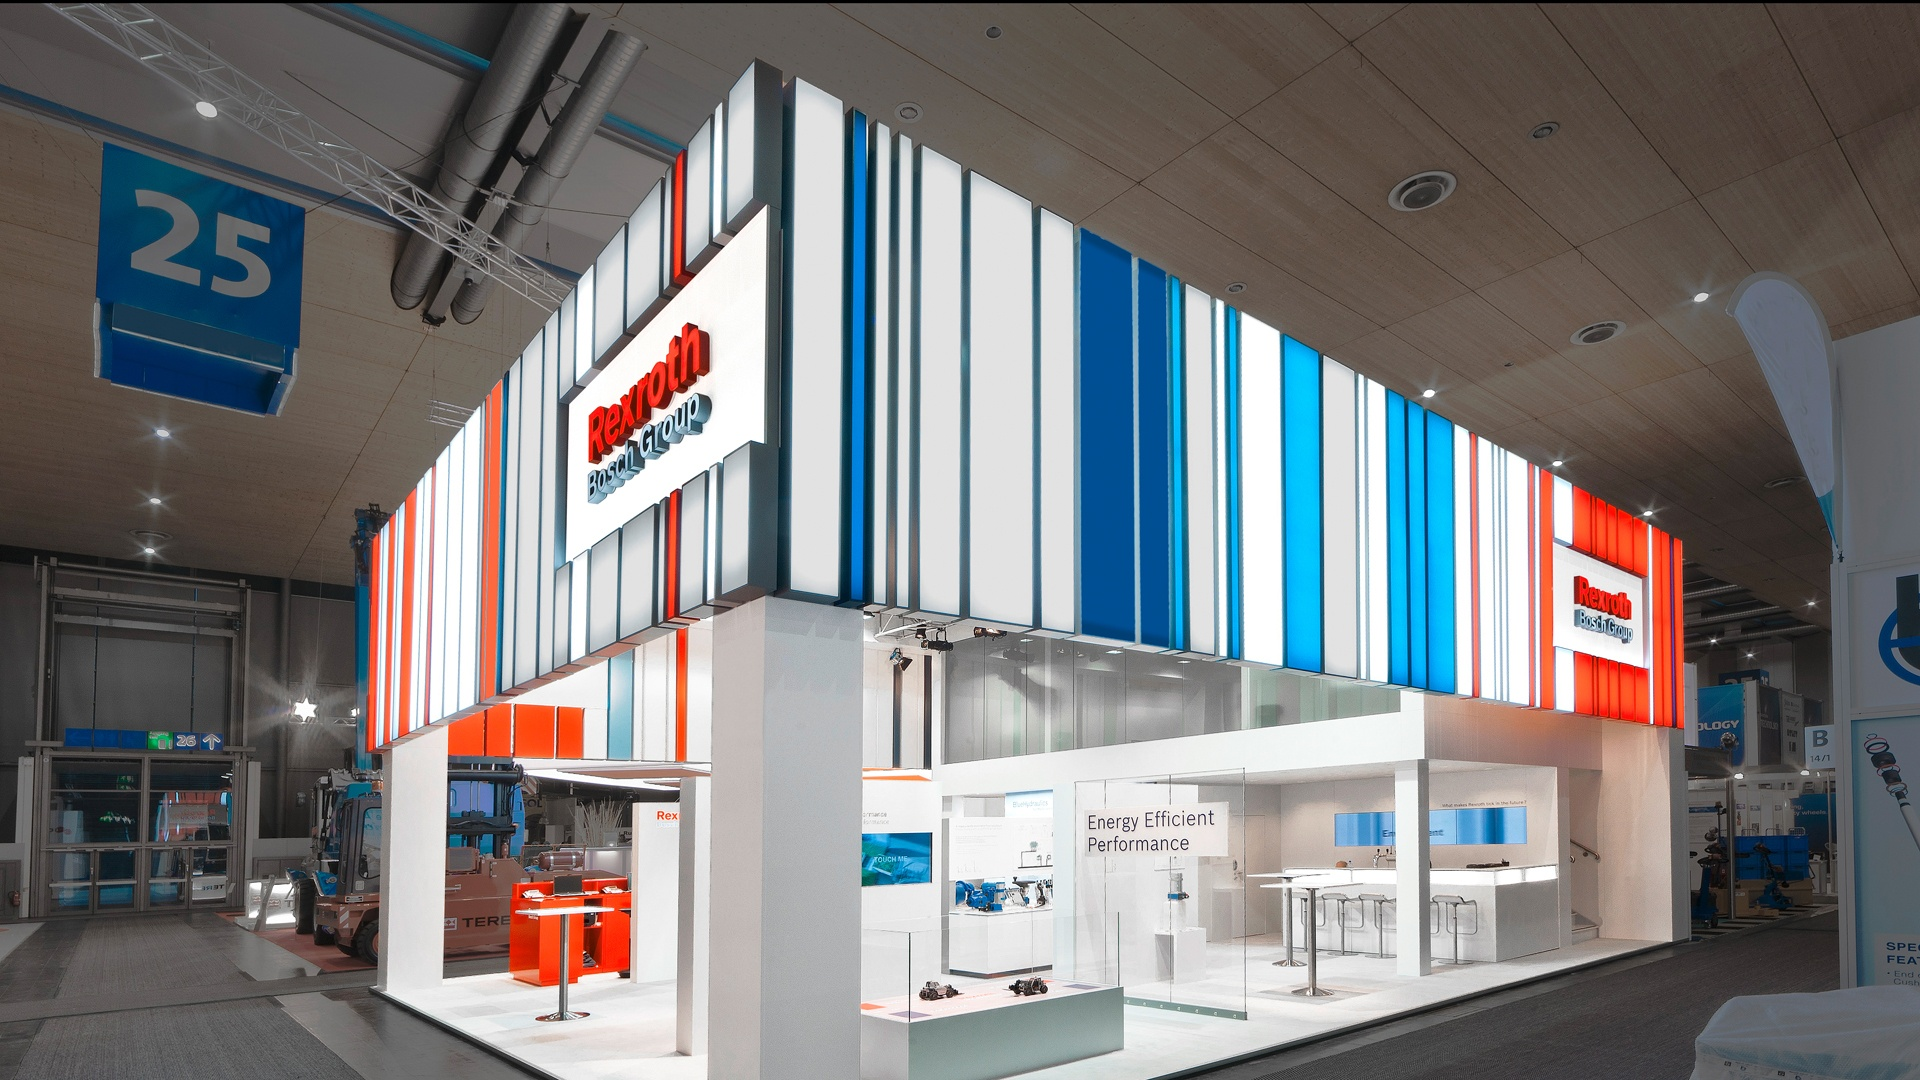 Architektur Bosch Rexroth CeMAT Messe